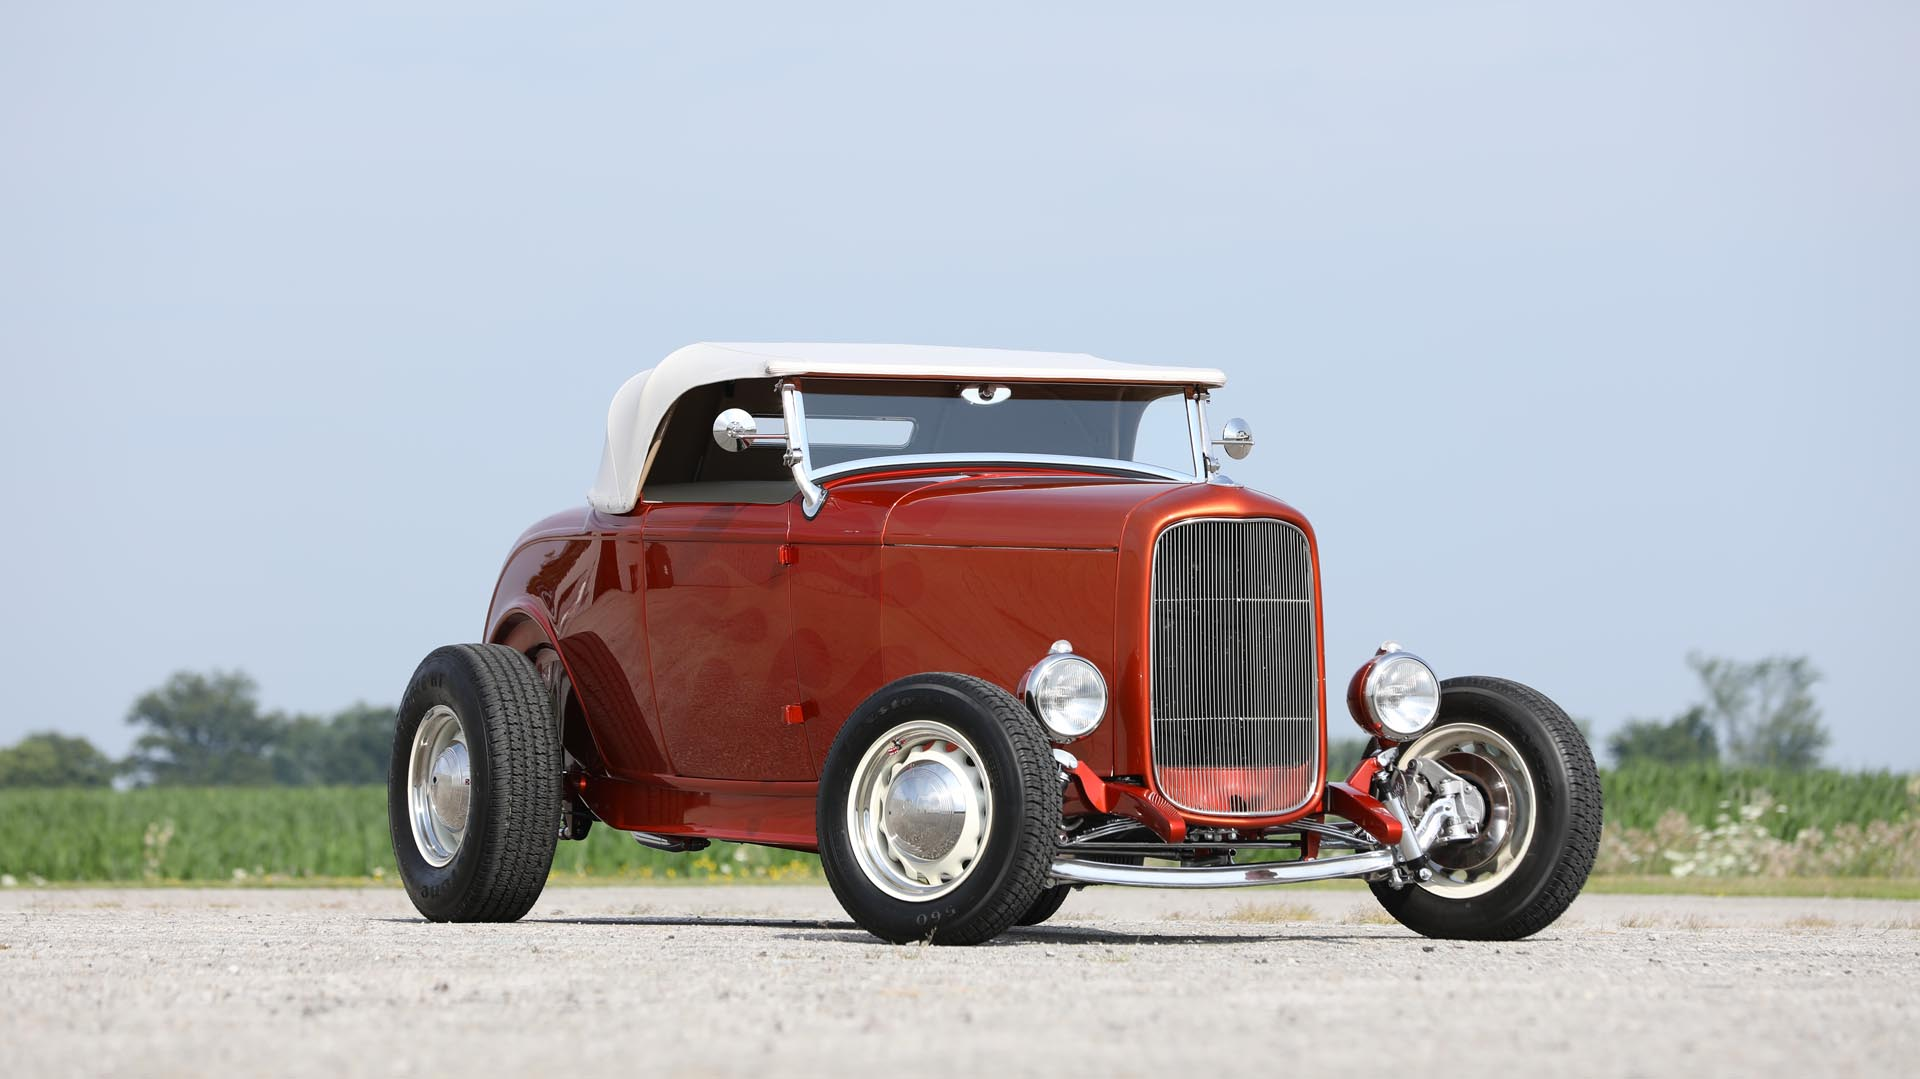 1932 Ford 'High Boy' Roadster